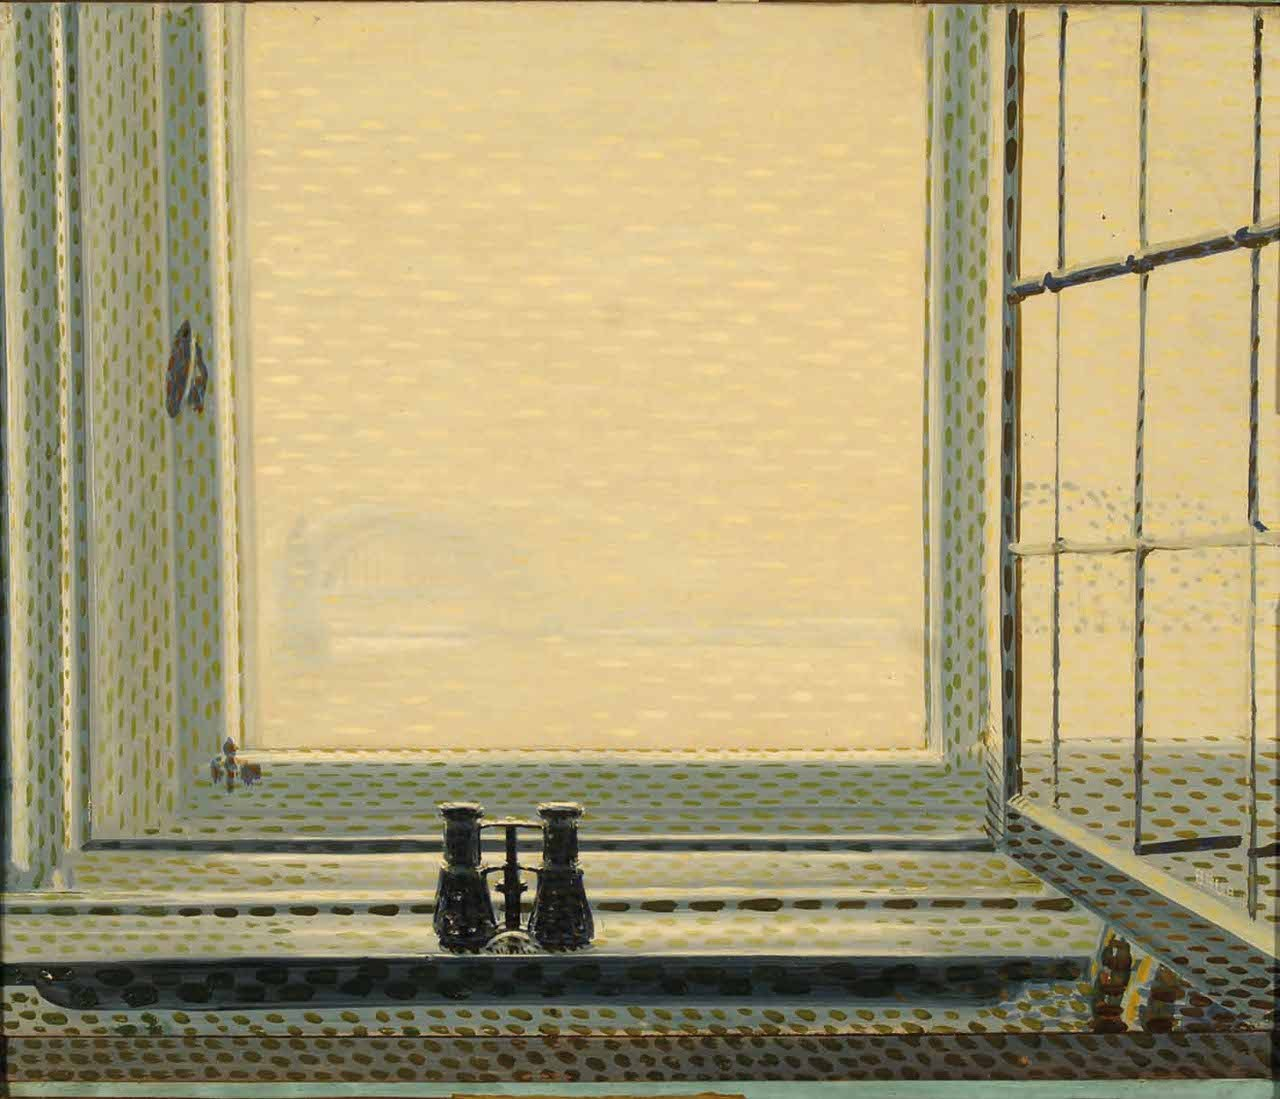 Window at Dusseldorf, Giacomo Balla 1912